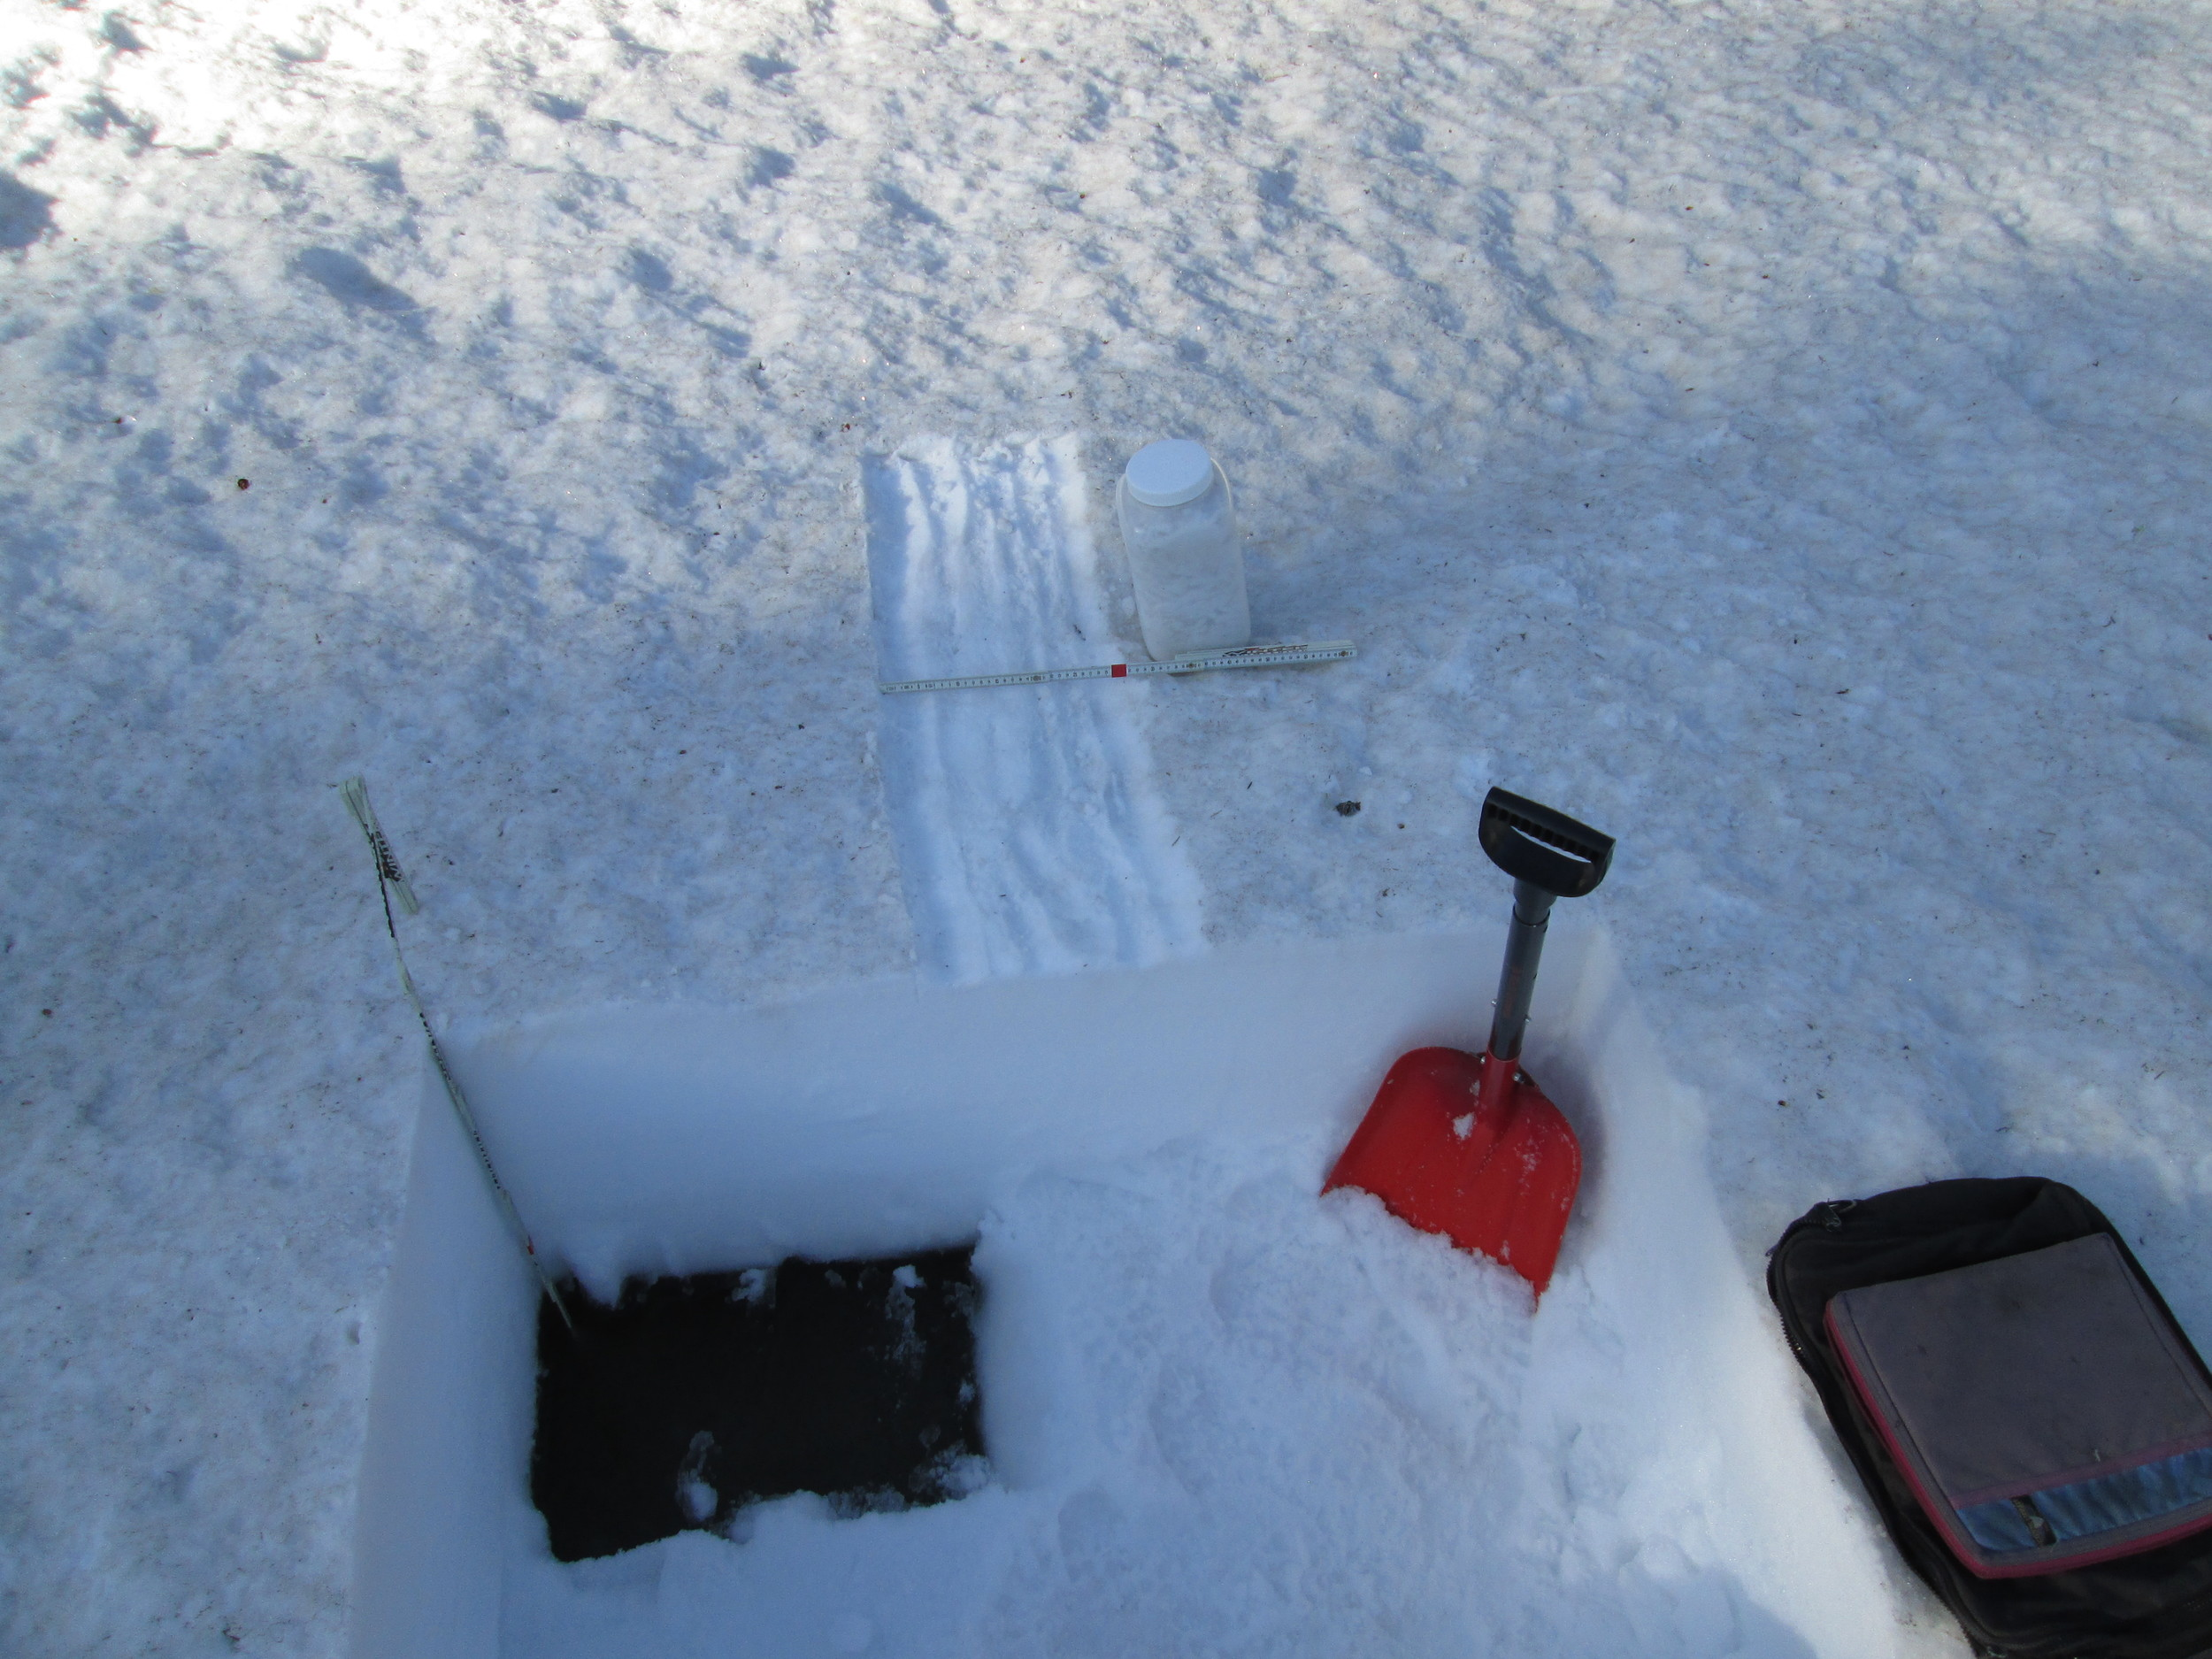 """Considerable snowmelt had occurred at the CODOS site since our prior April 25 visit, reducing snowpack depth from 91"""" (231 cm) to just 28"""" (70 cm), 4"""" of which was 'liquid snow' (the dark, standing water at the base of the snowpack, as seen in the pit corner). Snowmelt at the nearby Rabbit Ears Snotel had frequently exceeded 2"""" of SWE loss per day in the preceding weeks. All dust layers had merged at the snowpack surface and an 'all layers merged' sample was collected. Dust layer D8 was present but less dominant at Rabbit Ears Pass than at CODOS sites farther south, somewhat masked by considerable amounts of darker tree debris, accumulated from most of the winter."""